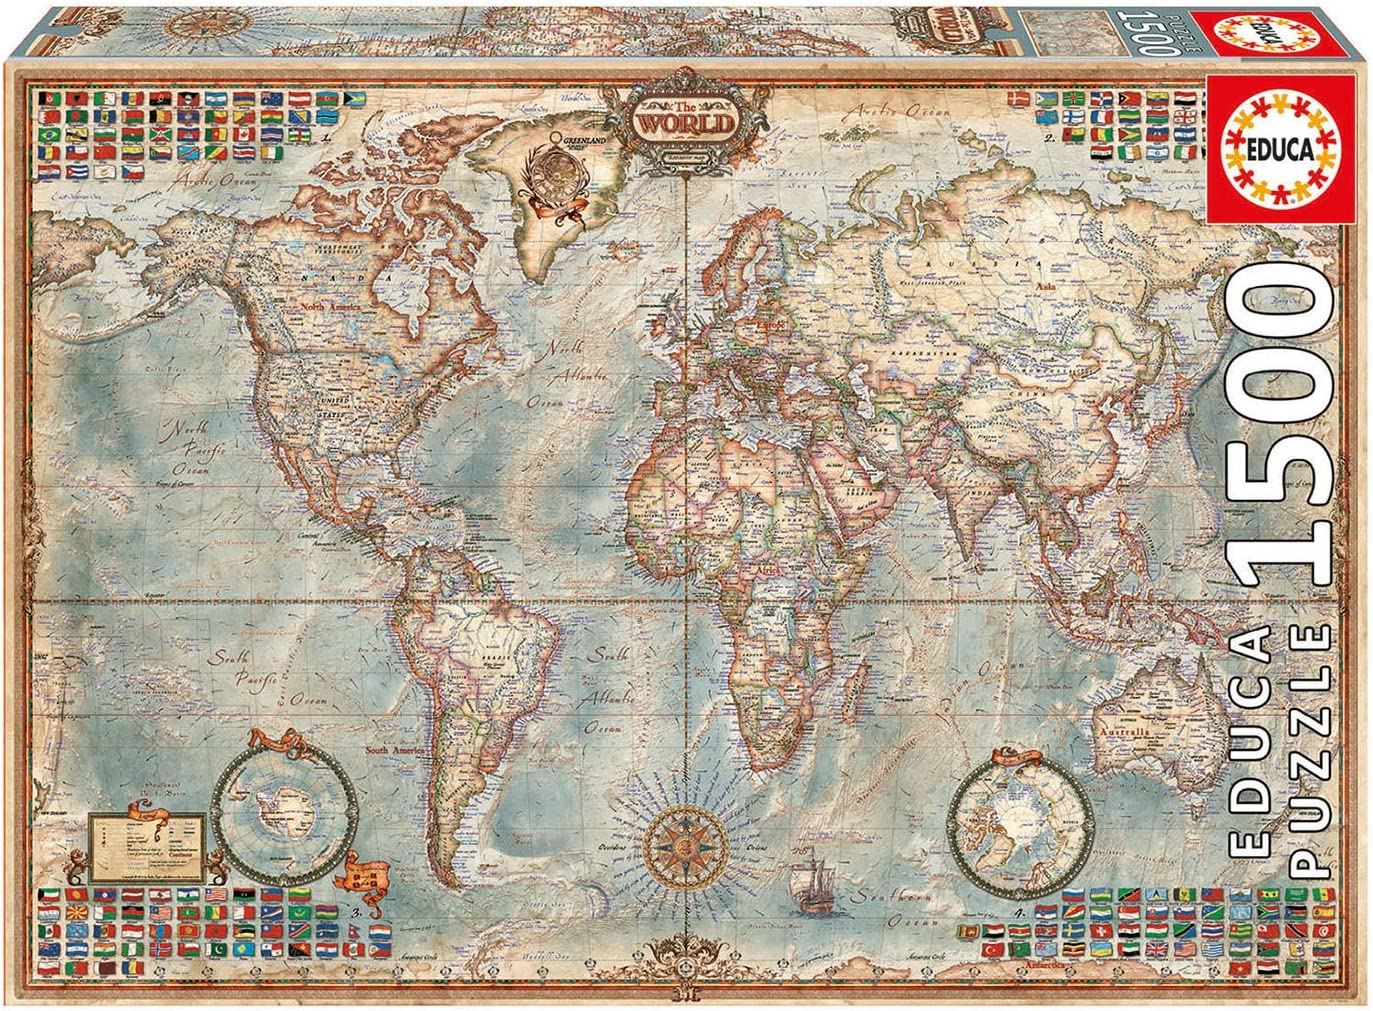 Map Of The World 1500 Amazon.com: Educa Political Map of The World Puzzle, 1500 Piece